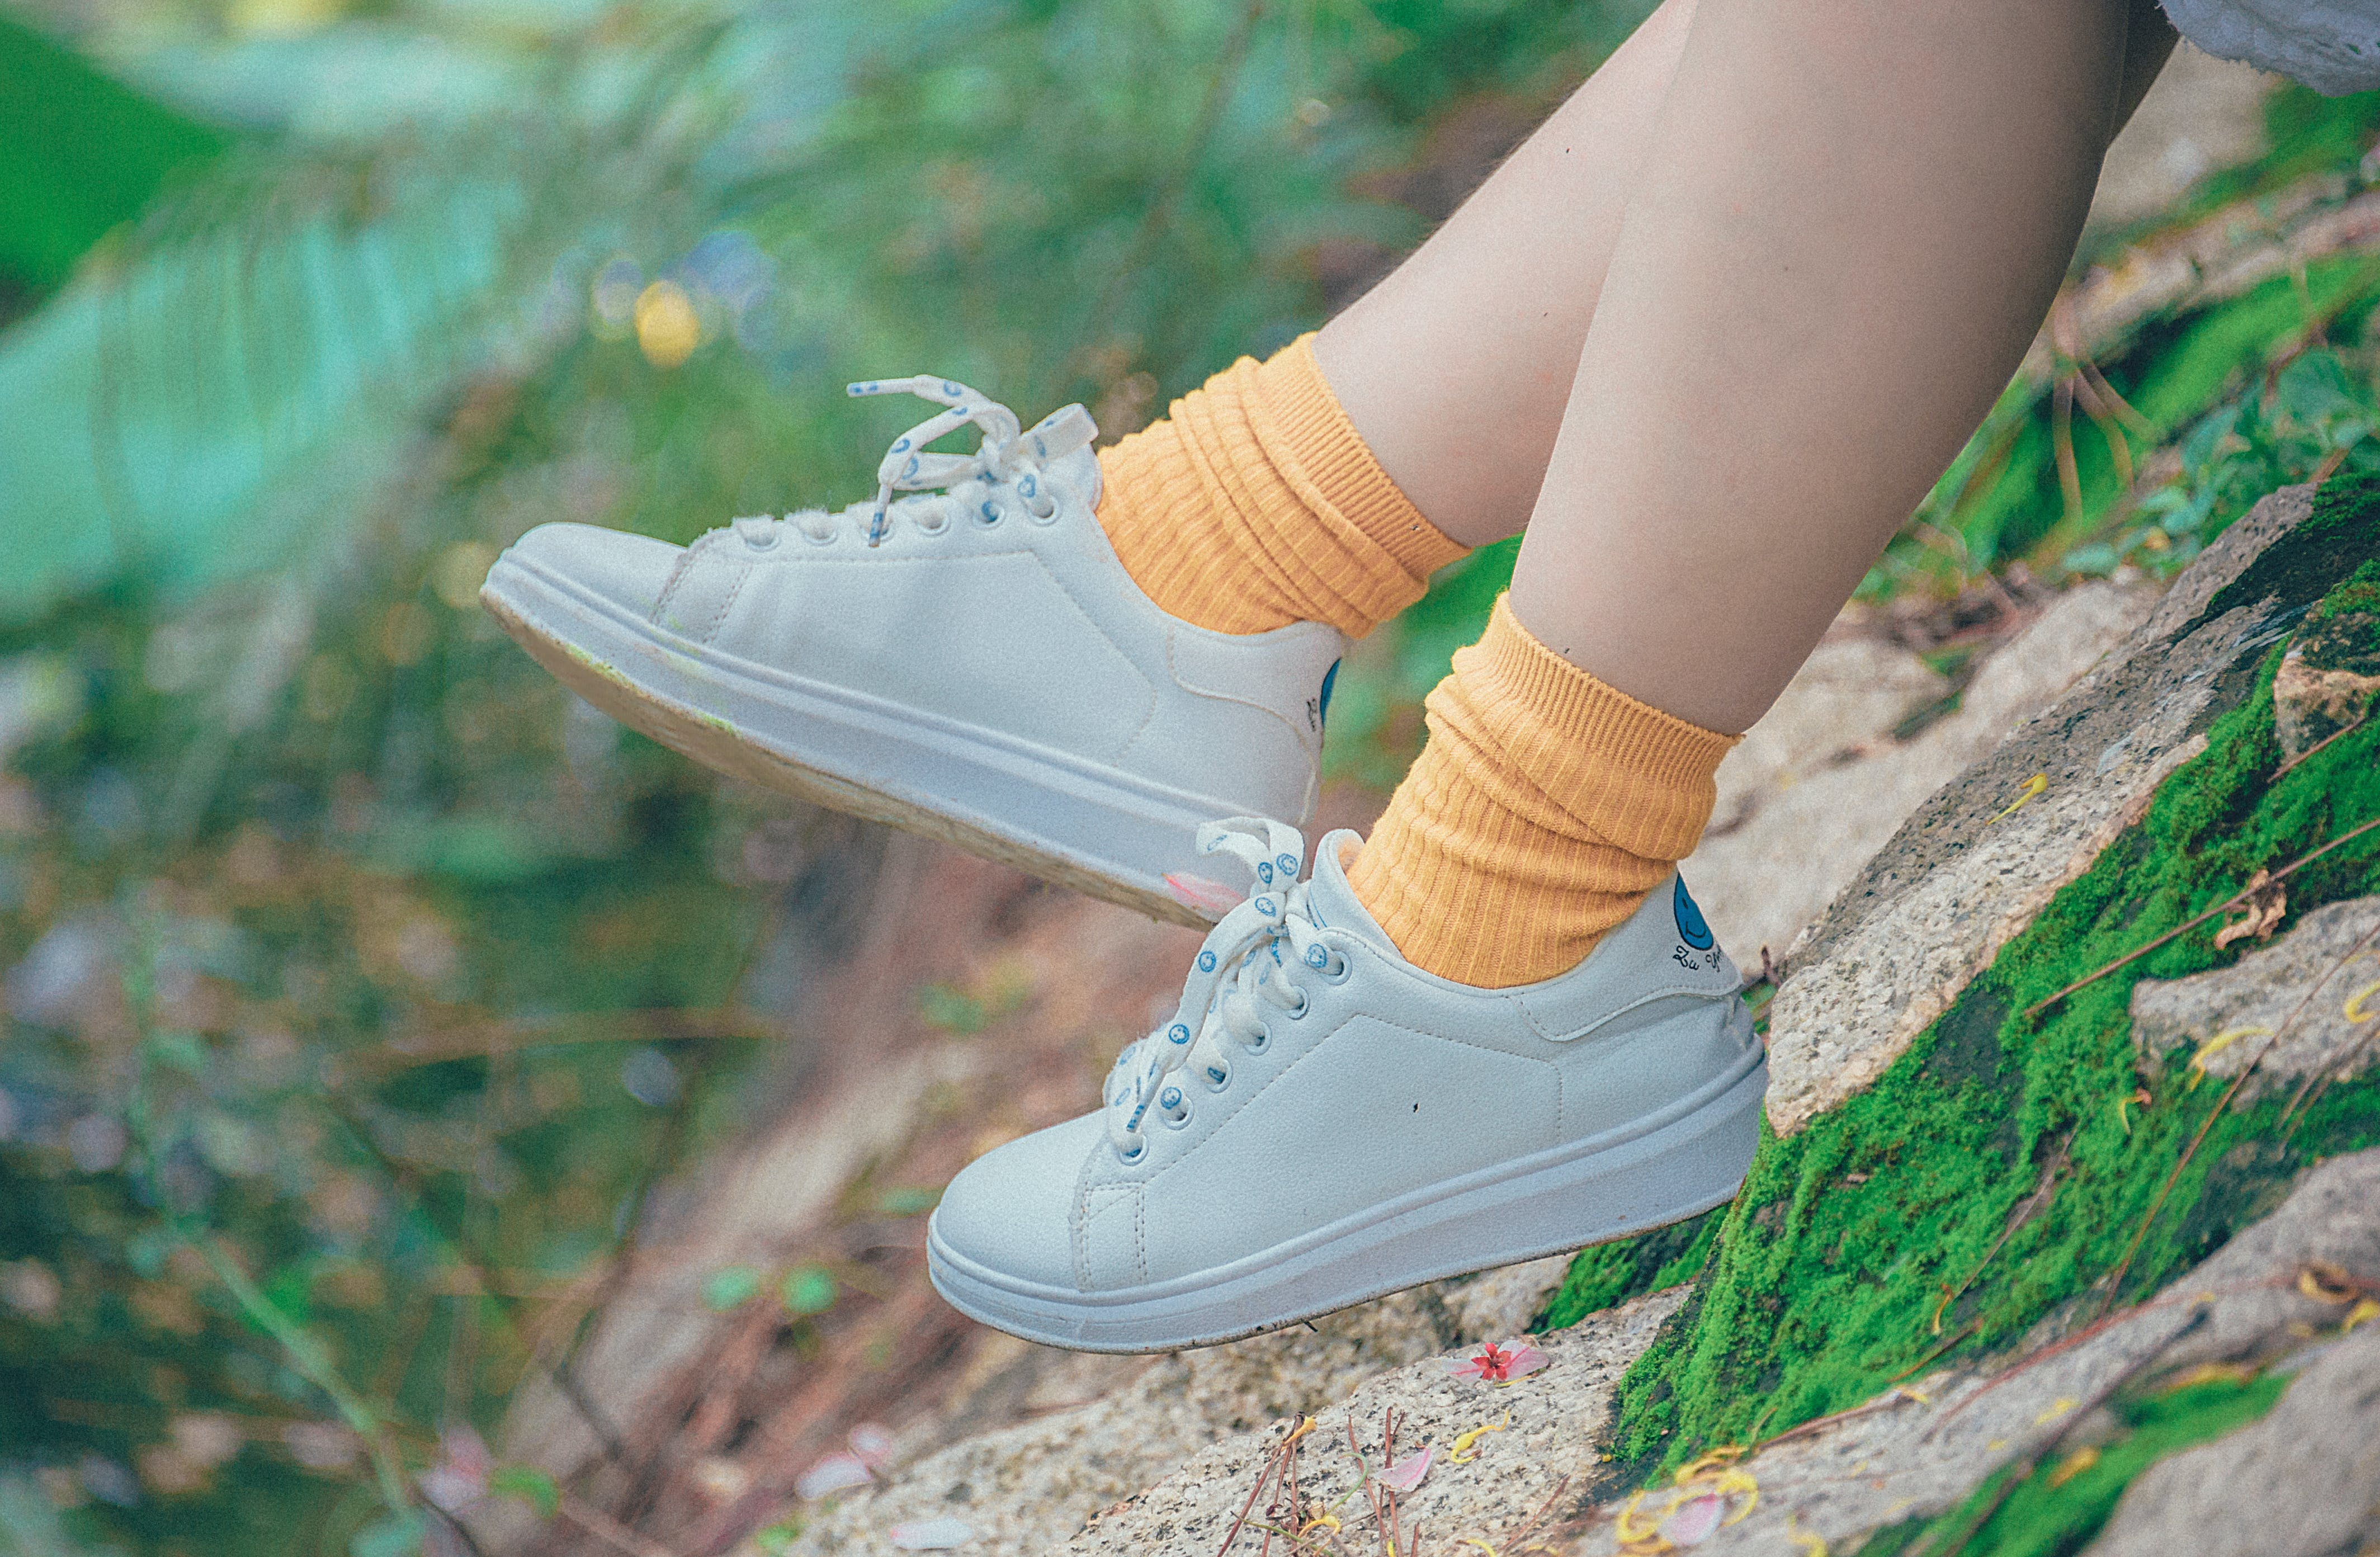 Person Wearing White Plimsoll Shoes